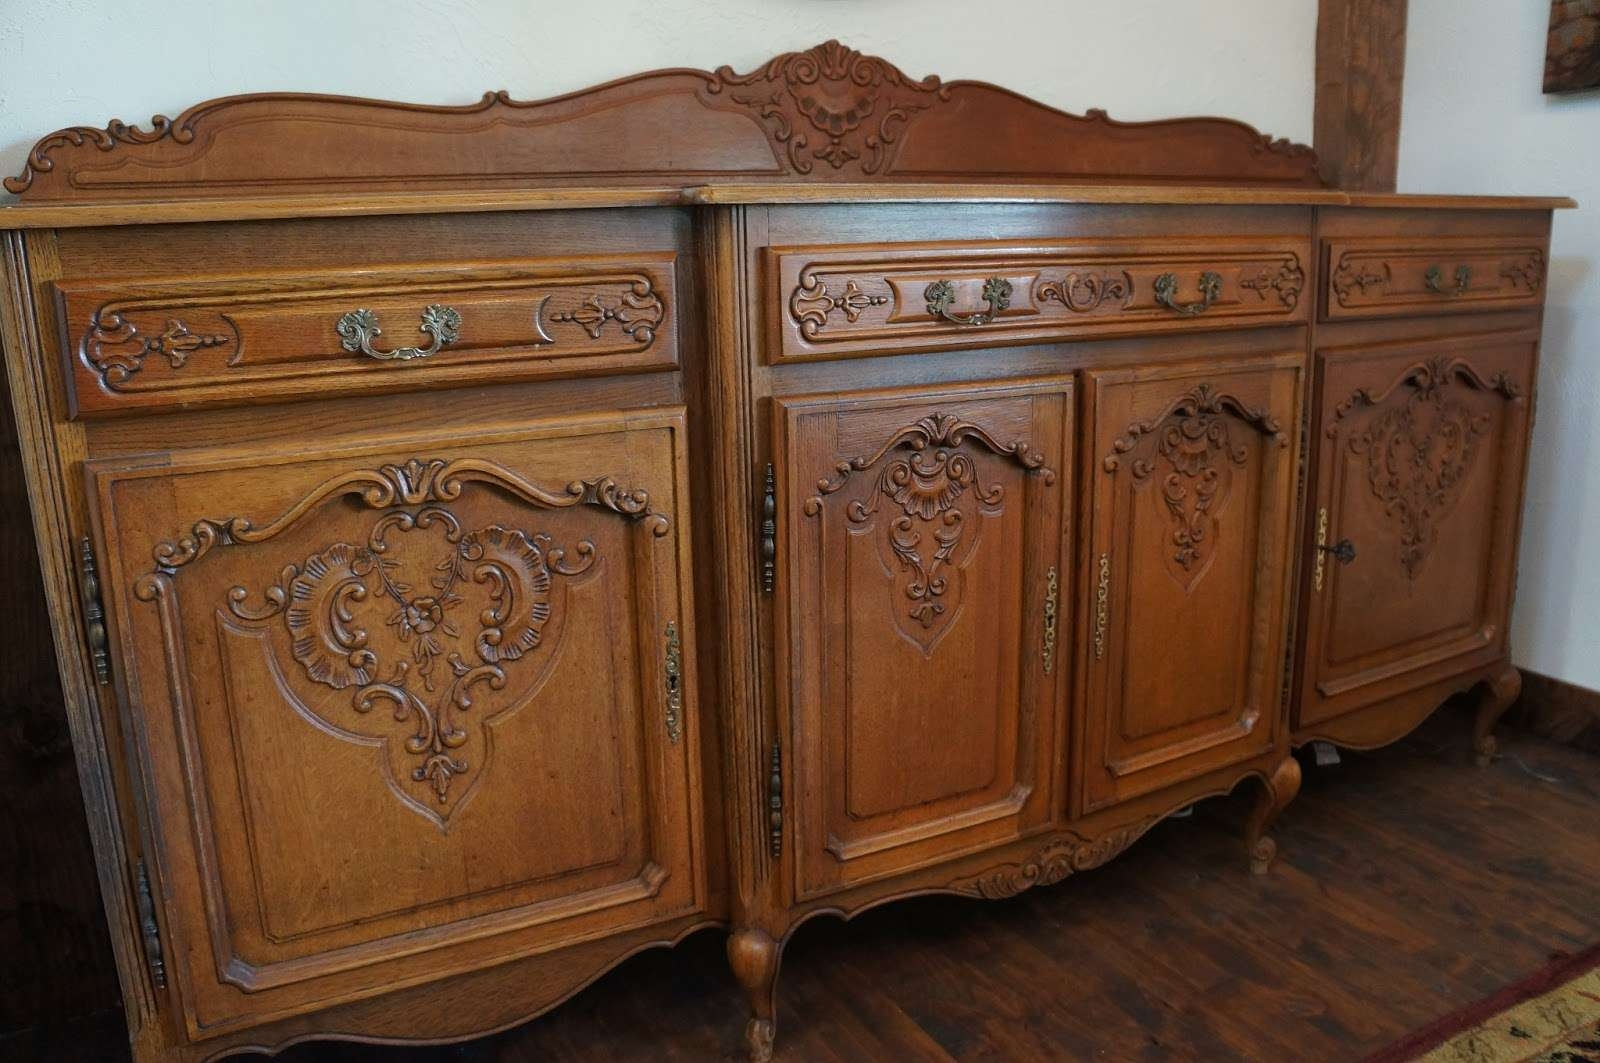 European Flair Furniture: Shop Store Throughout French Country Sideboards (View 6 of 20)